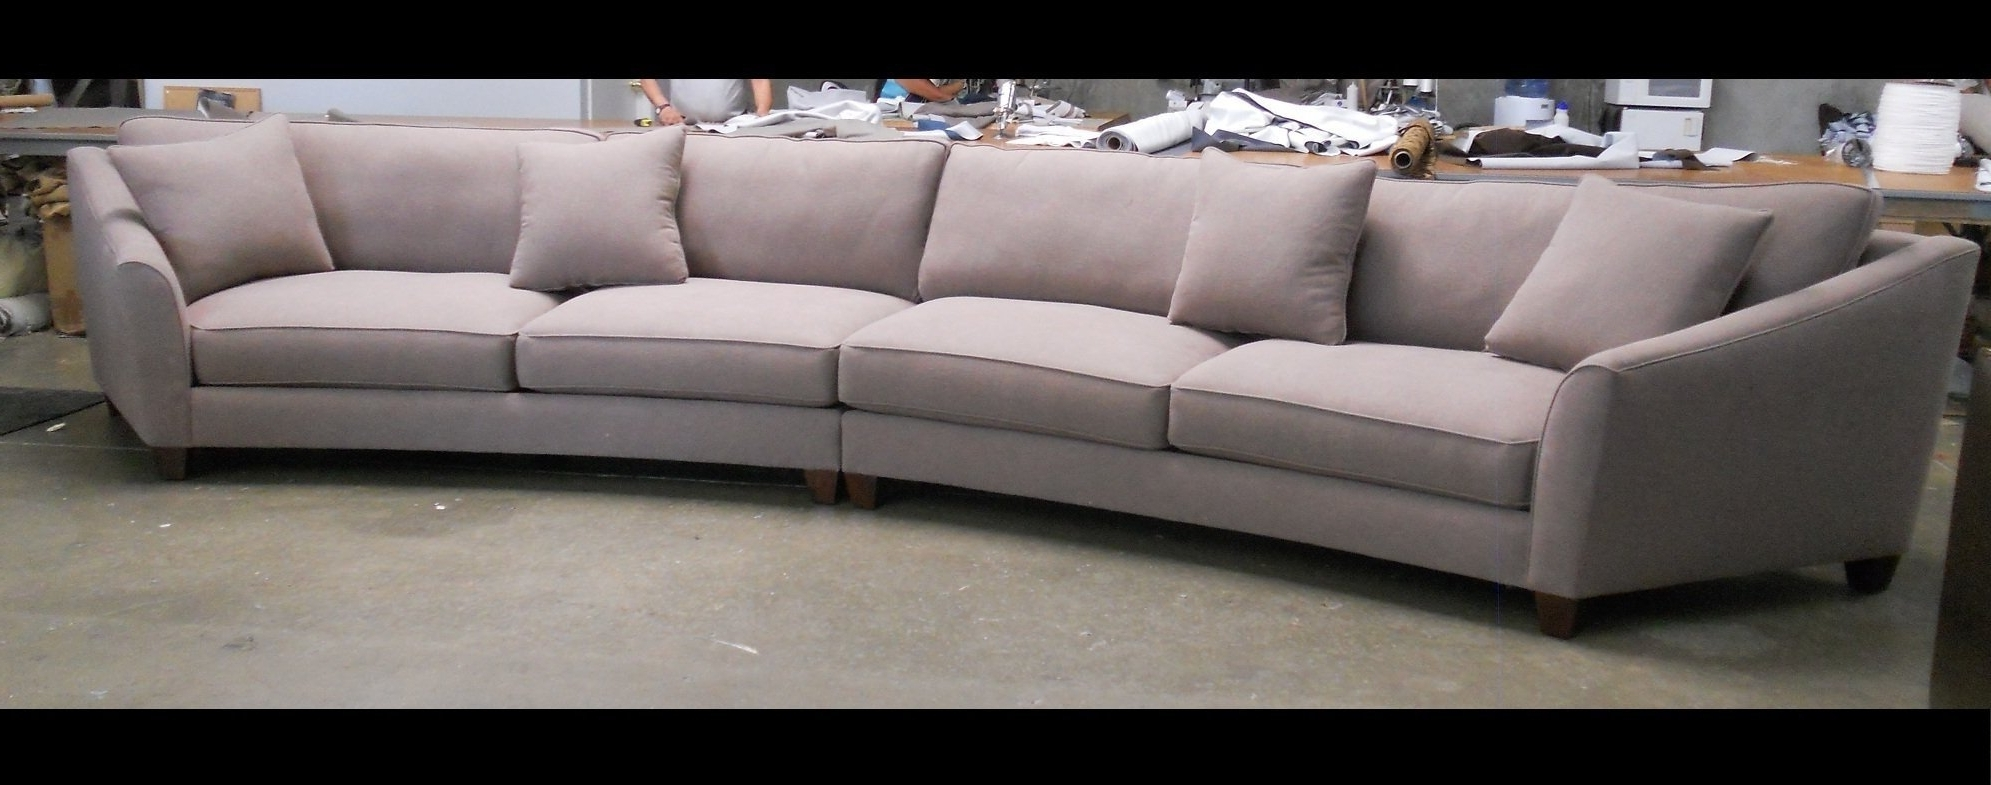 Furniture : 5060 Recliner Sectional Sofa Costco $699 Corner Couch Within Fashionable 80x80 Sectional Sofas (View 8 of 20)